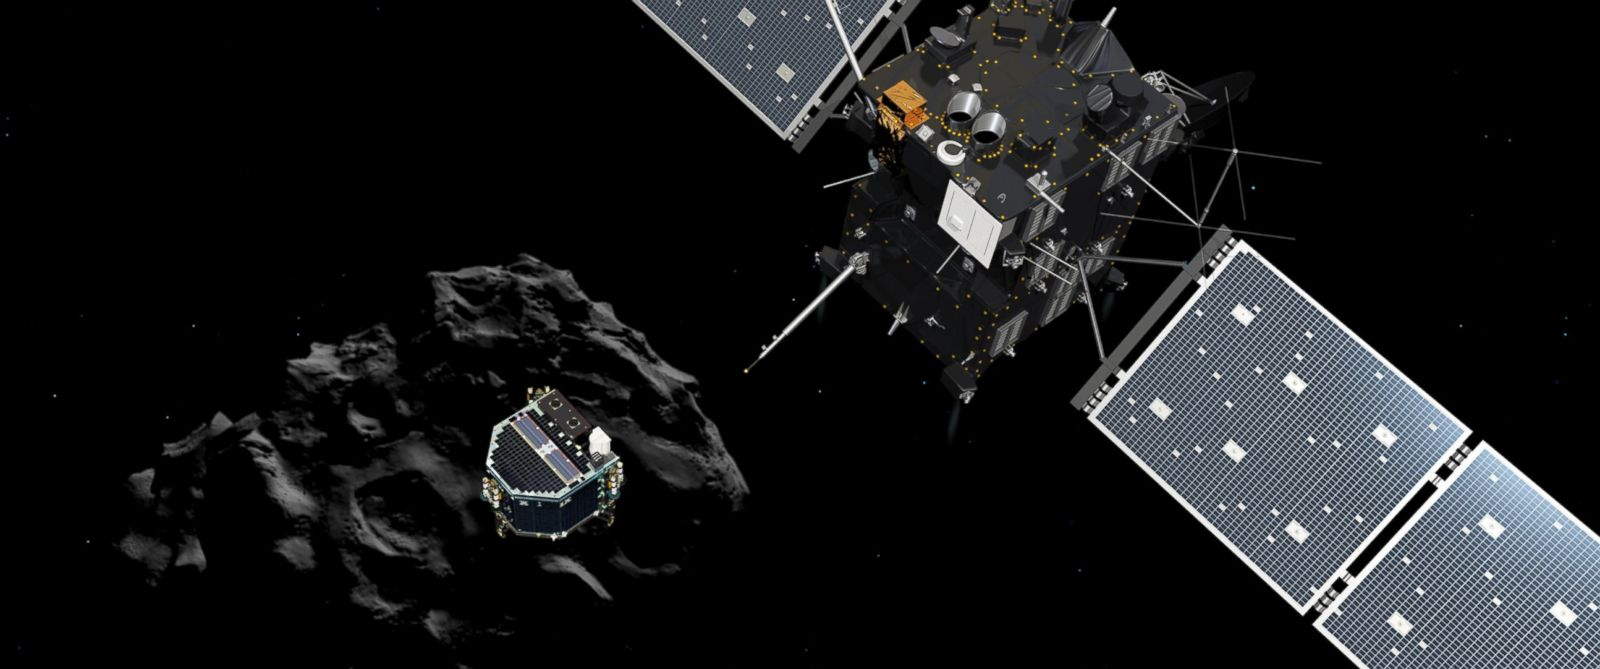 The image released by the European Space Agency ESA, Nov. 12, 2014 shows an artist rendering by the ATG medialab depicting lander Philae separating from Rosetta mother spaceship and descending to the surface of comet 67P/Churyumov-Gerasimenko.